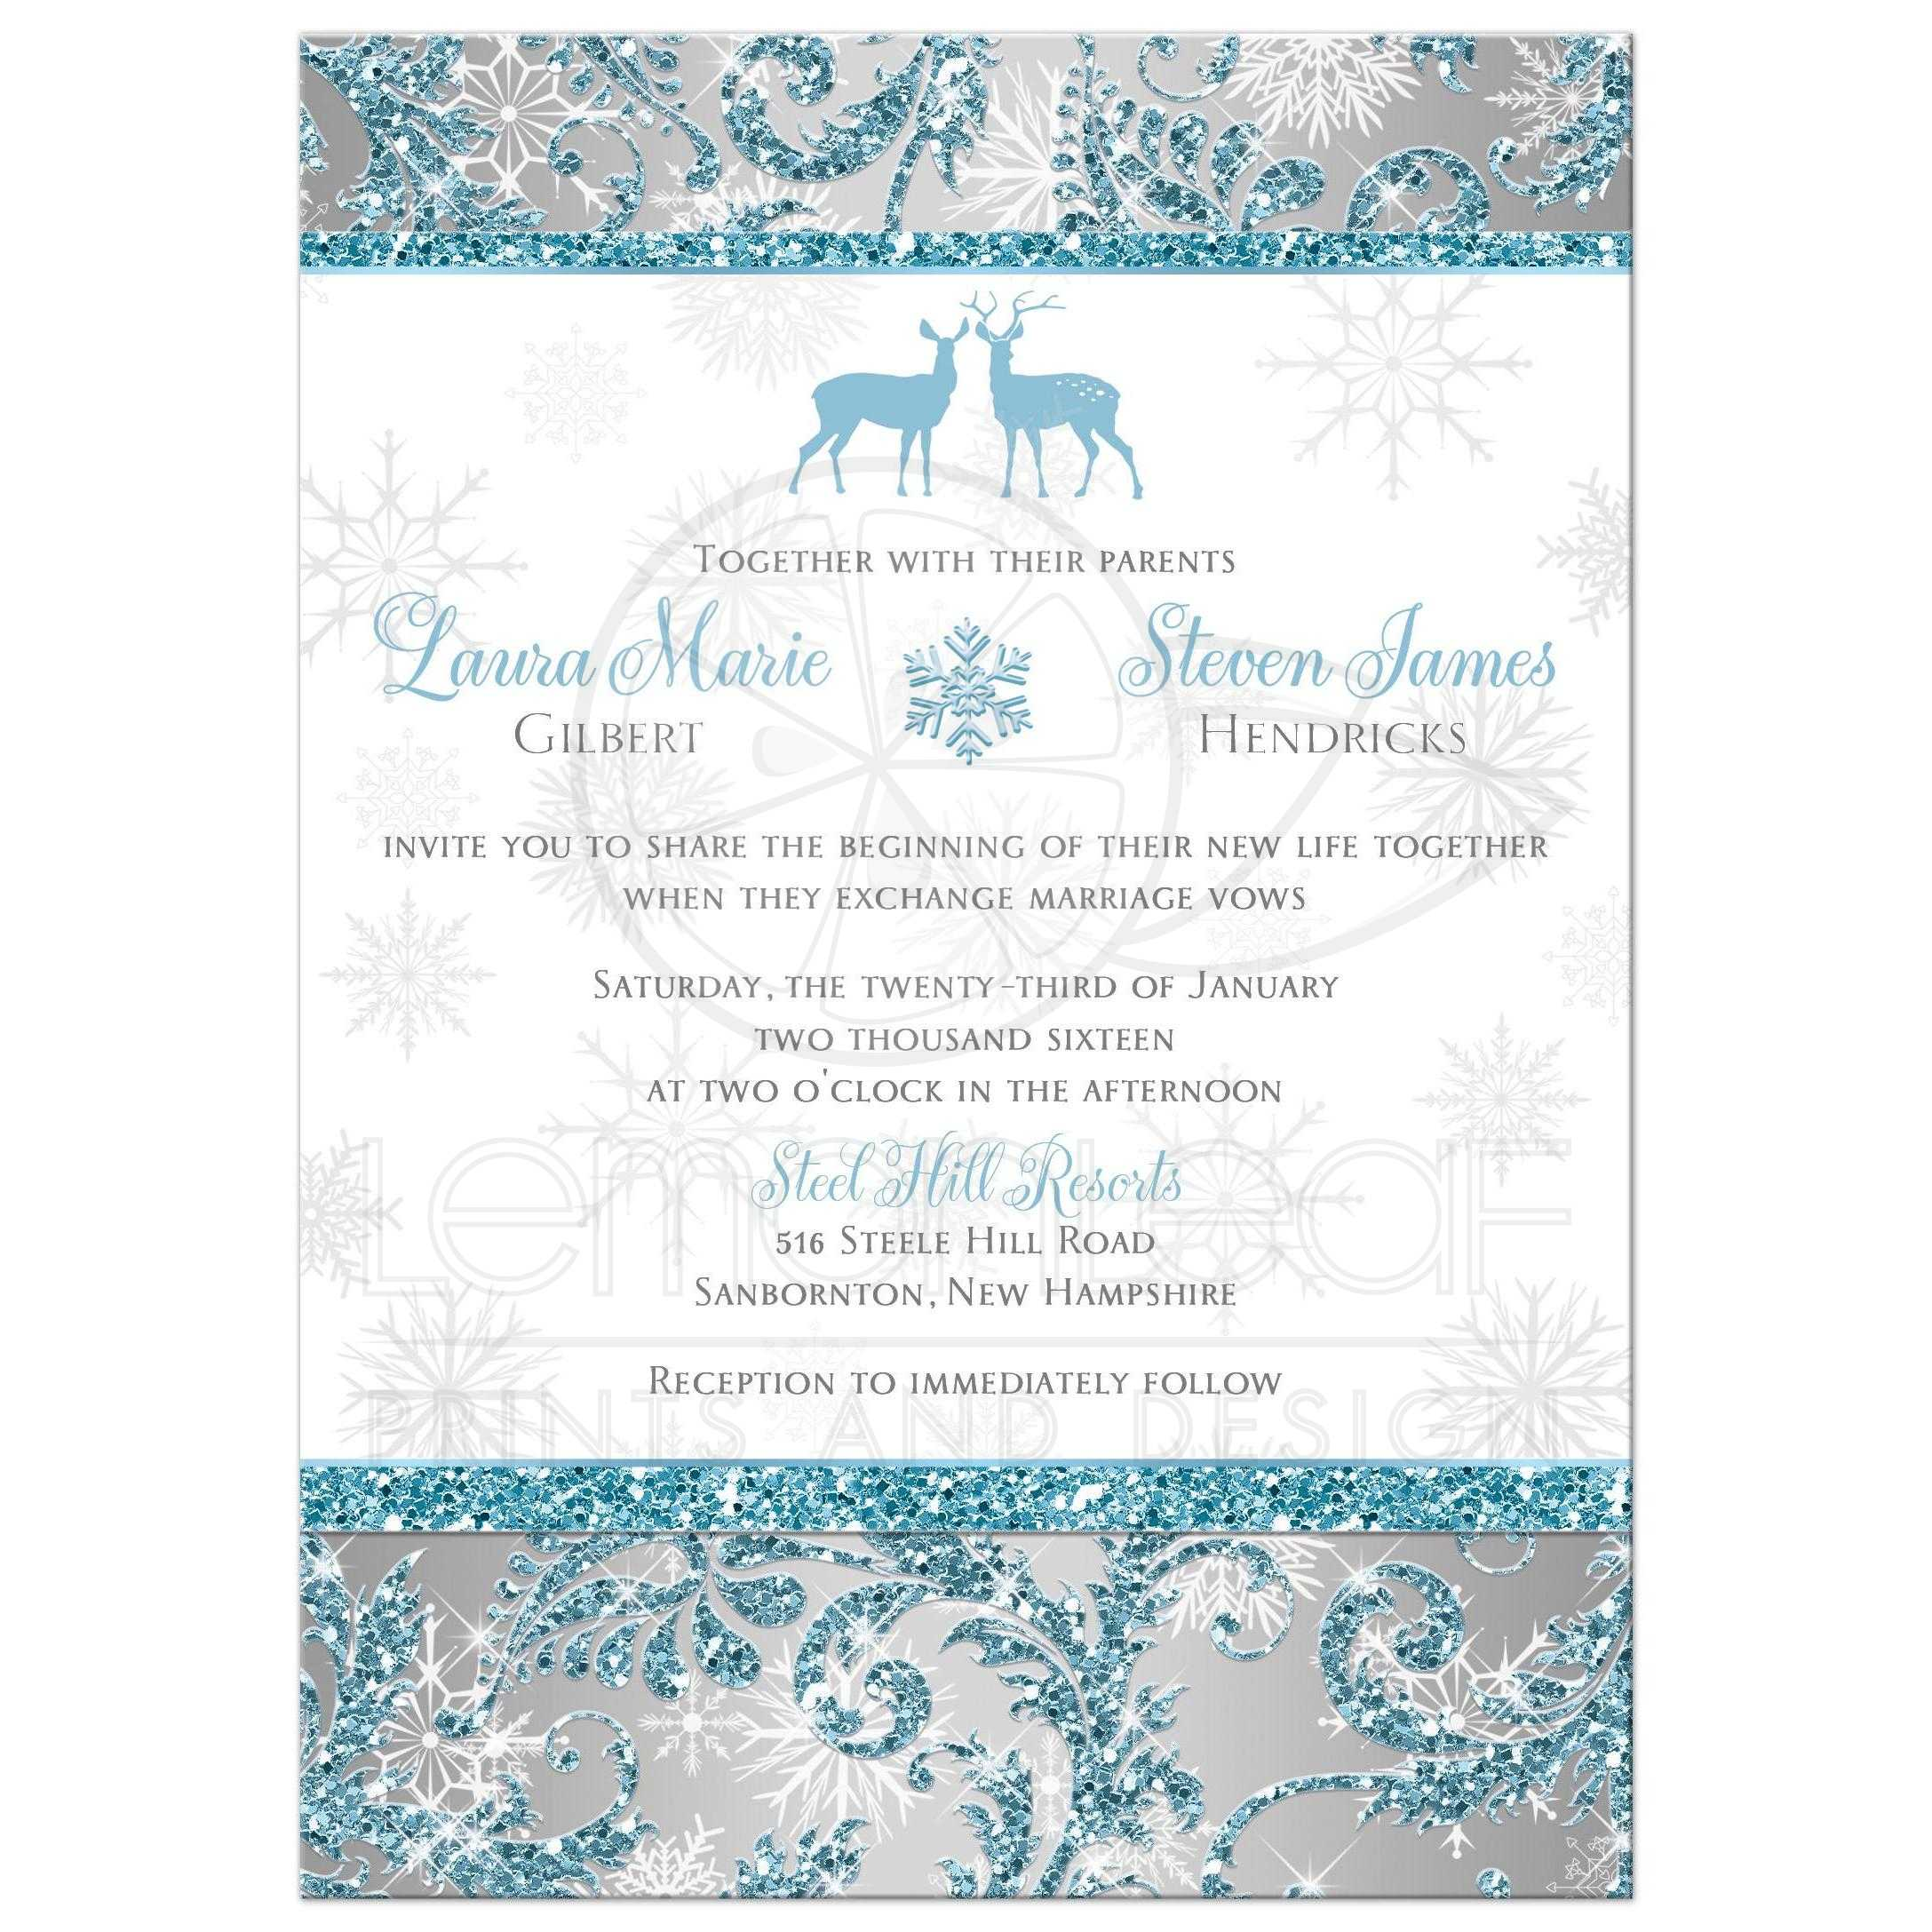 Silver And White Wedding Invitations: Winter Wonderland With Deer